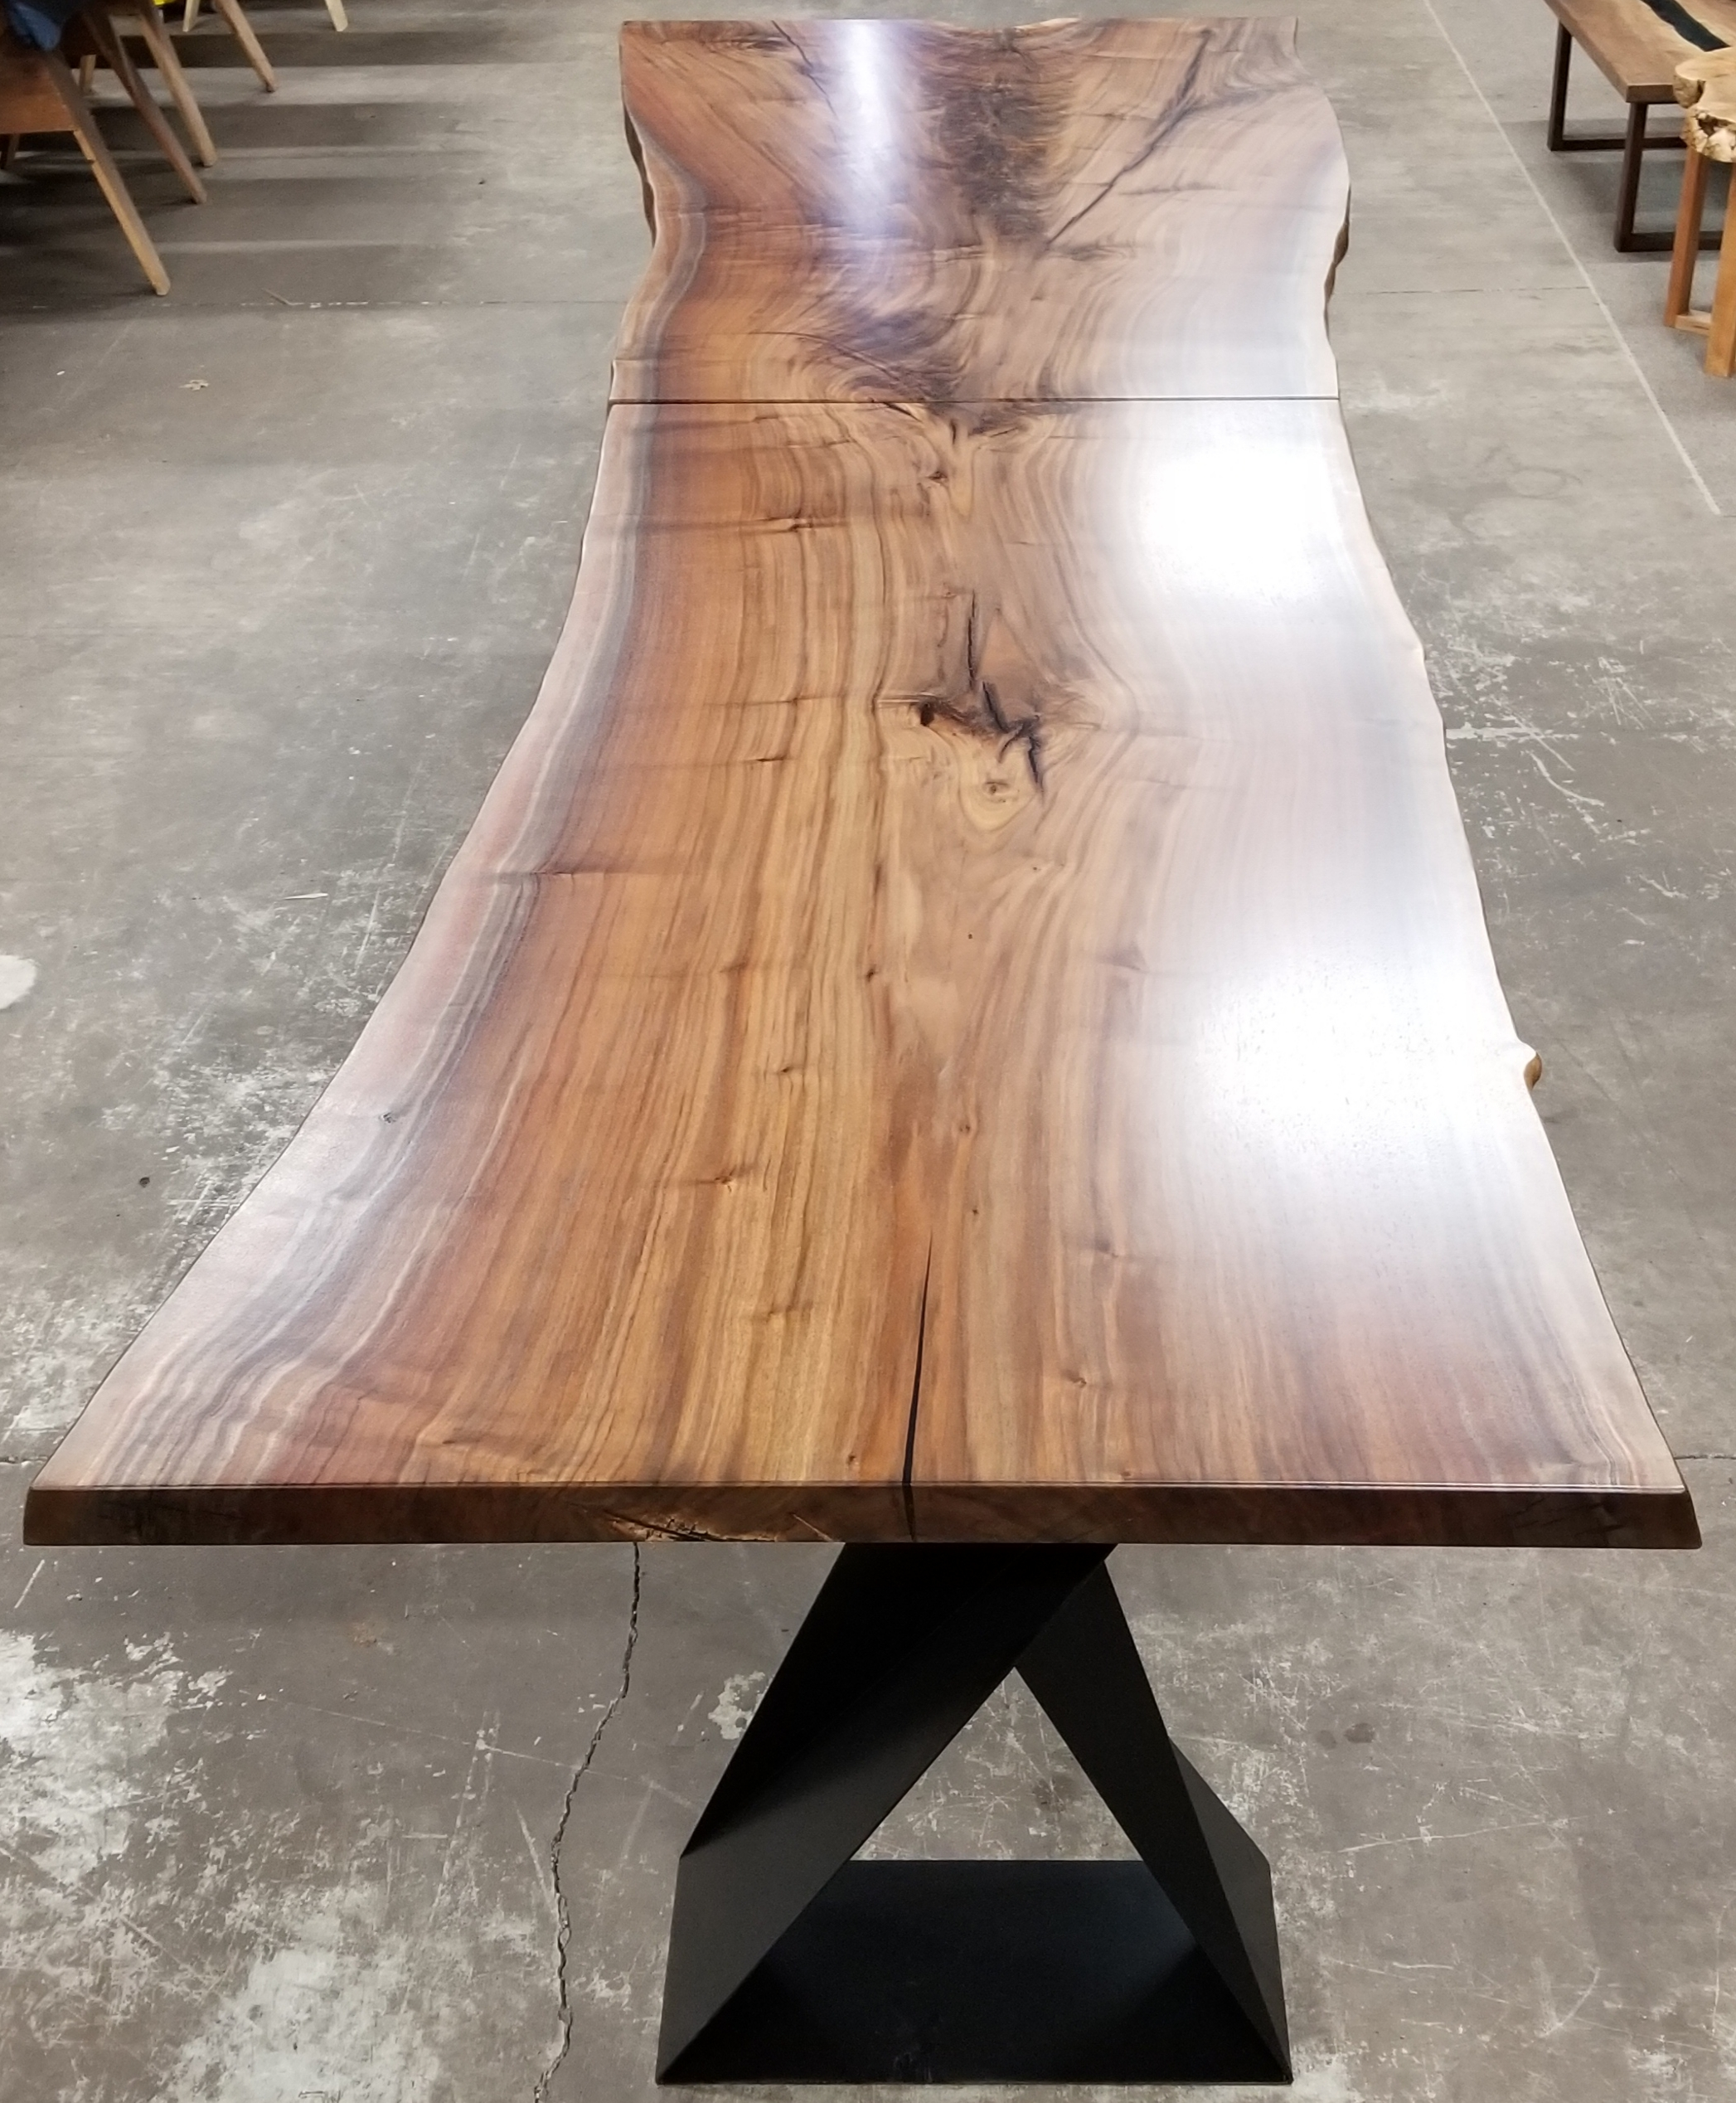 Jewell Hardwoods Custom Table for Kaiser Grille Palm Springs.